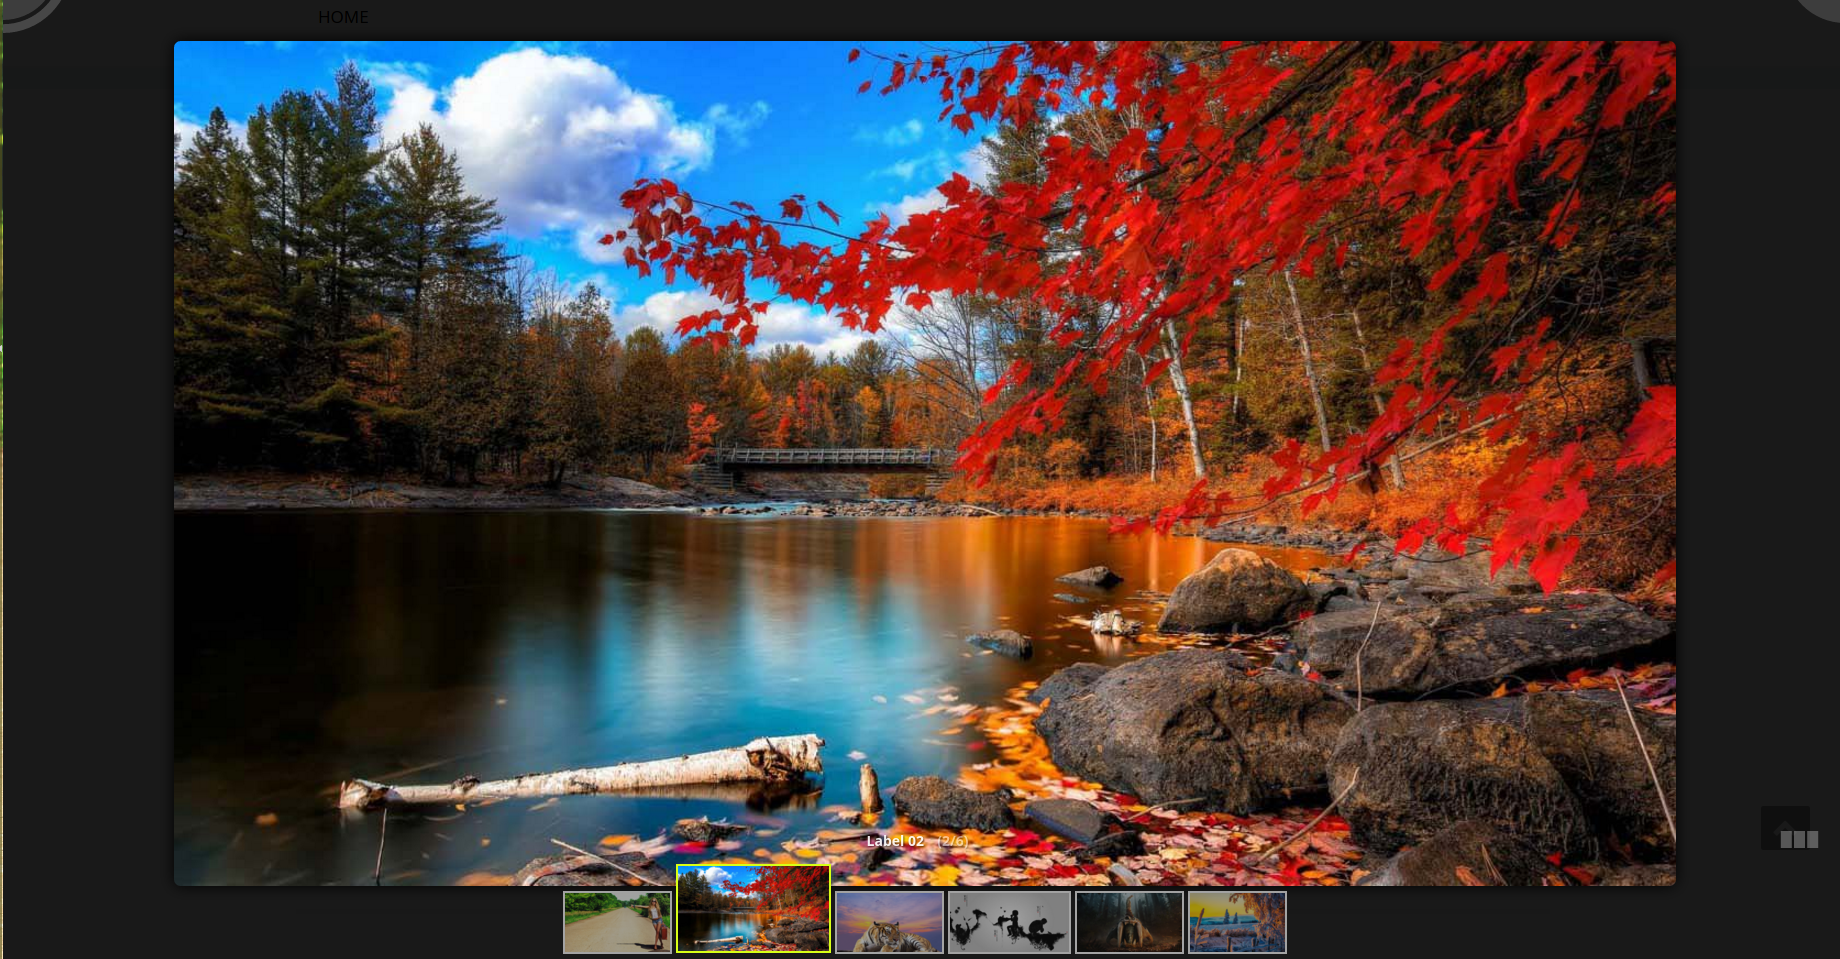 gallery-preview-at-page-into-lightbox-slider-3.4